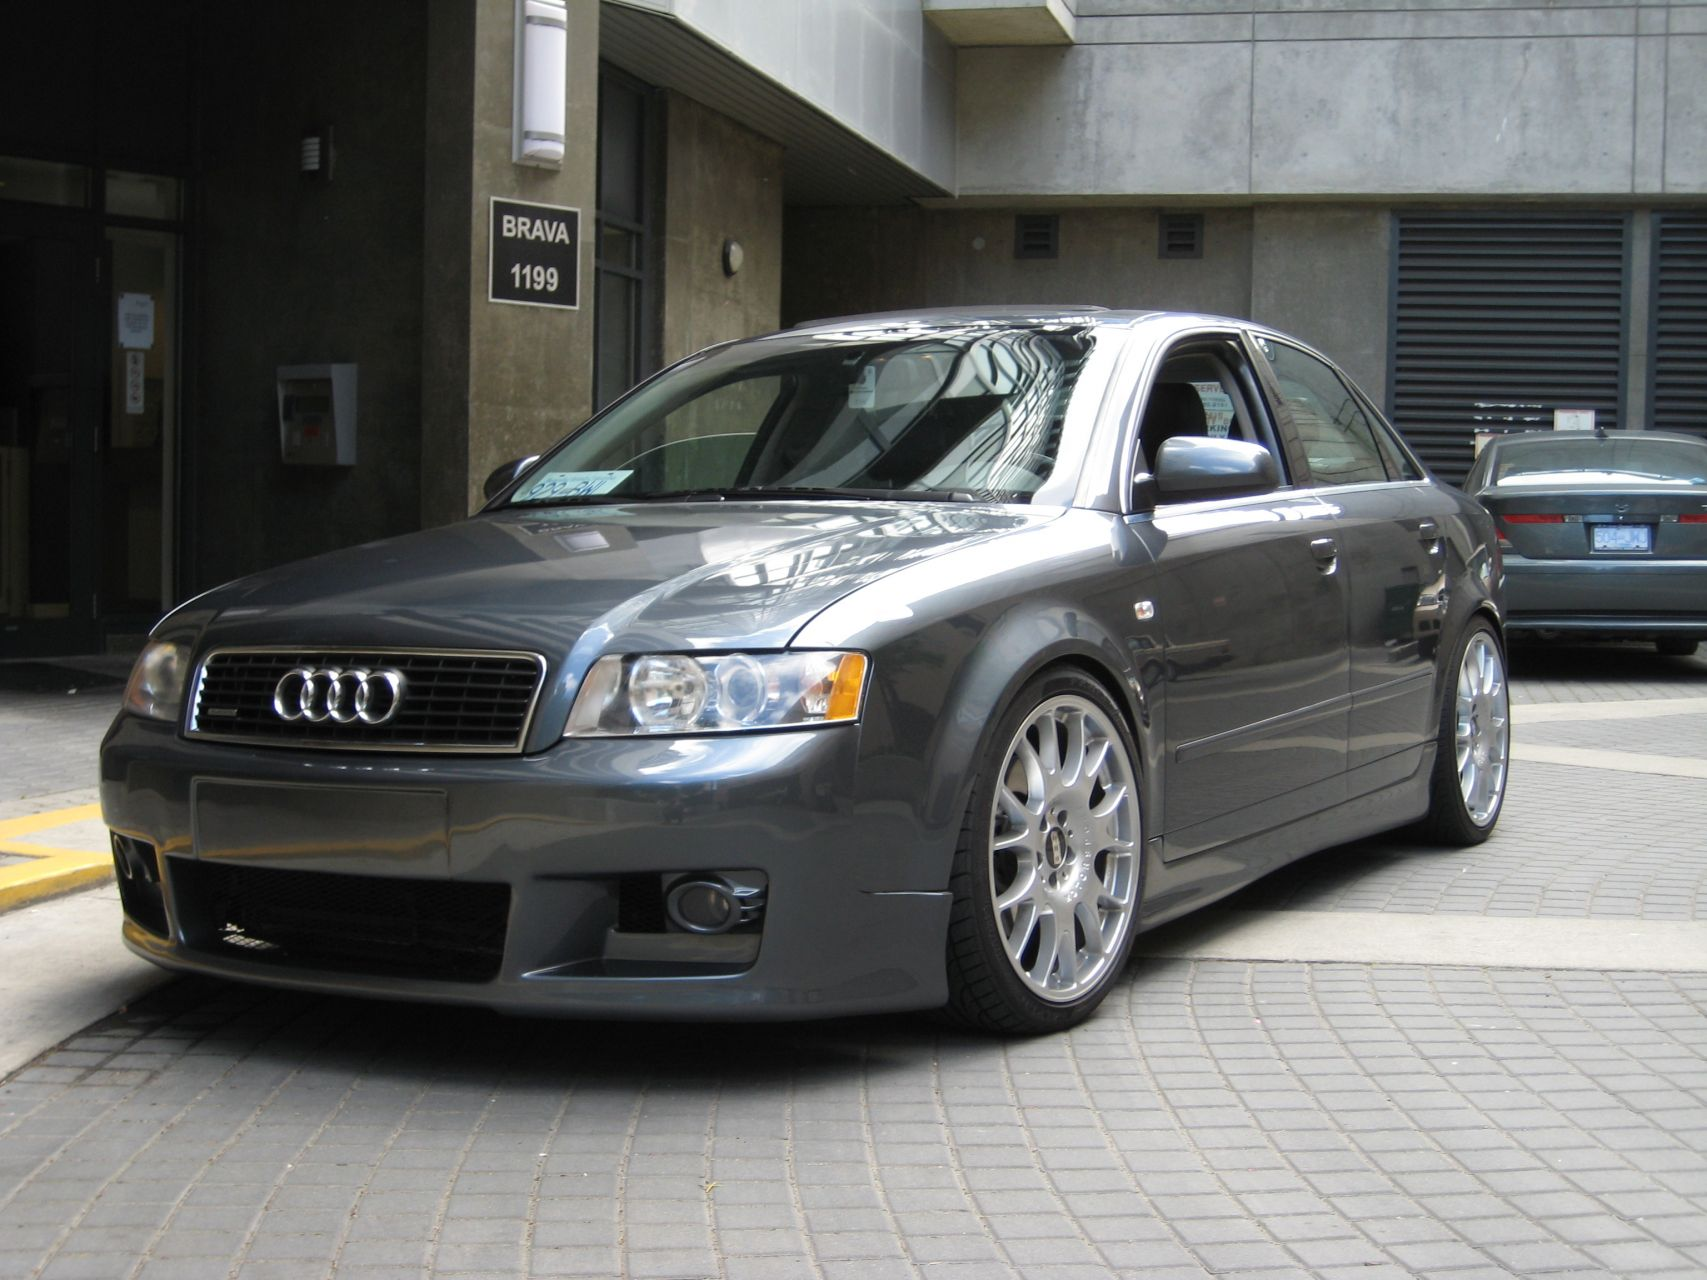 2003 Audi A4 Information and photos ZombieDrive